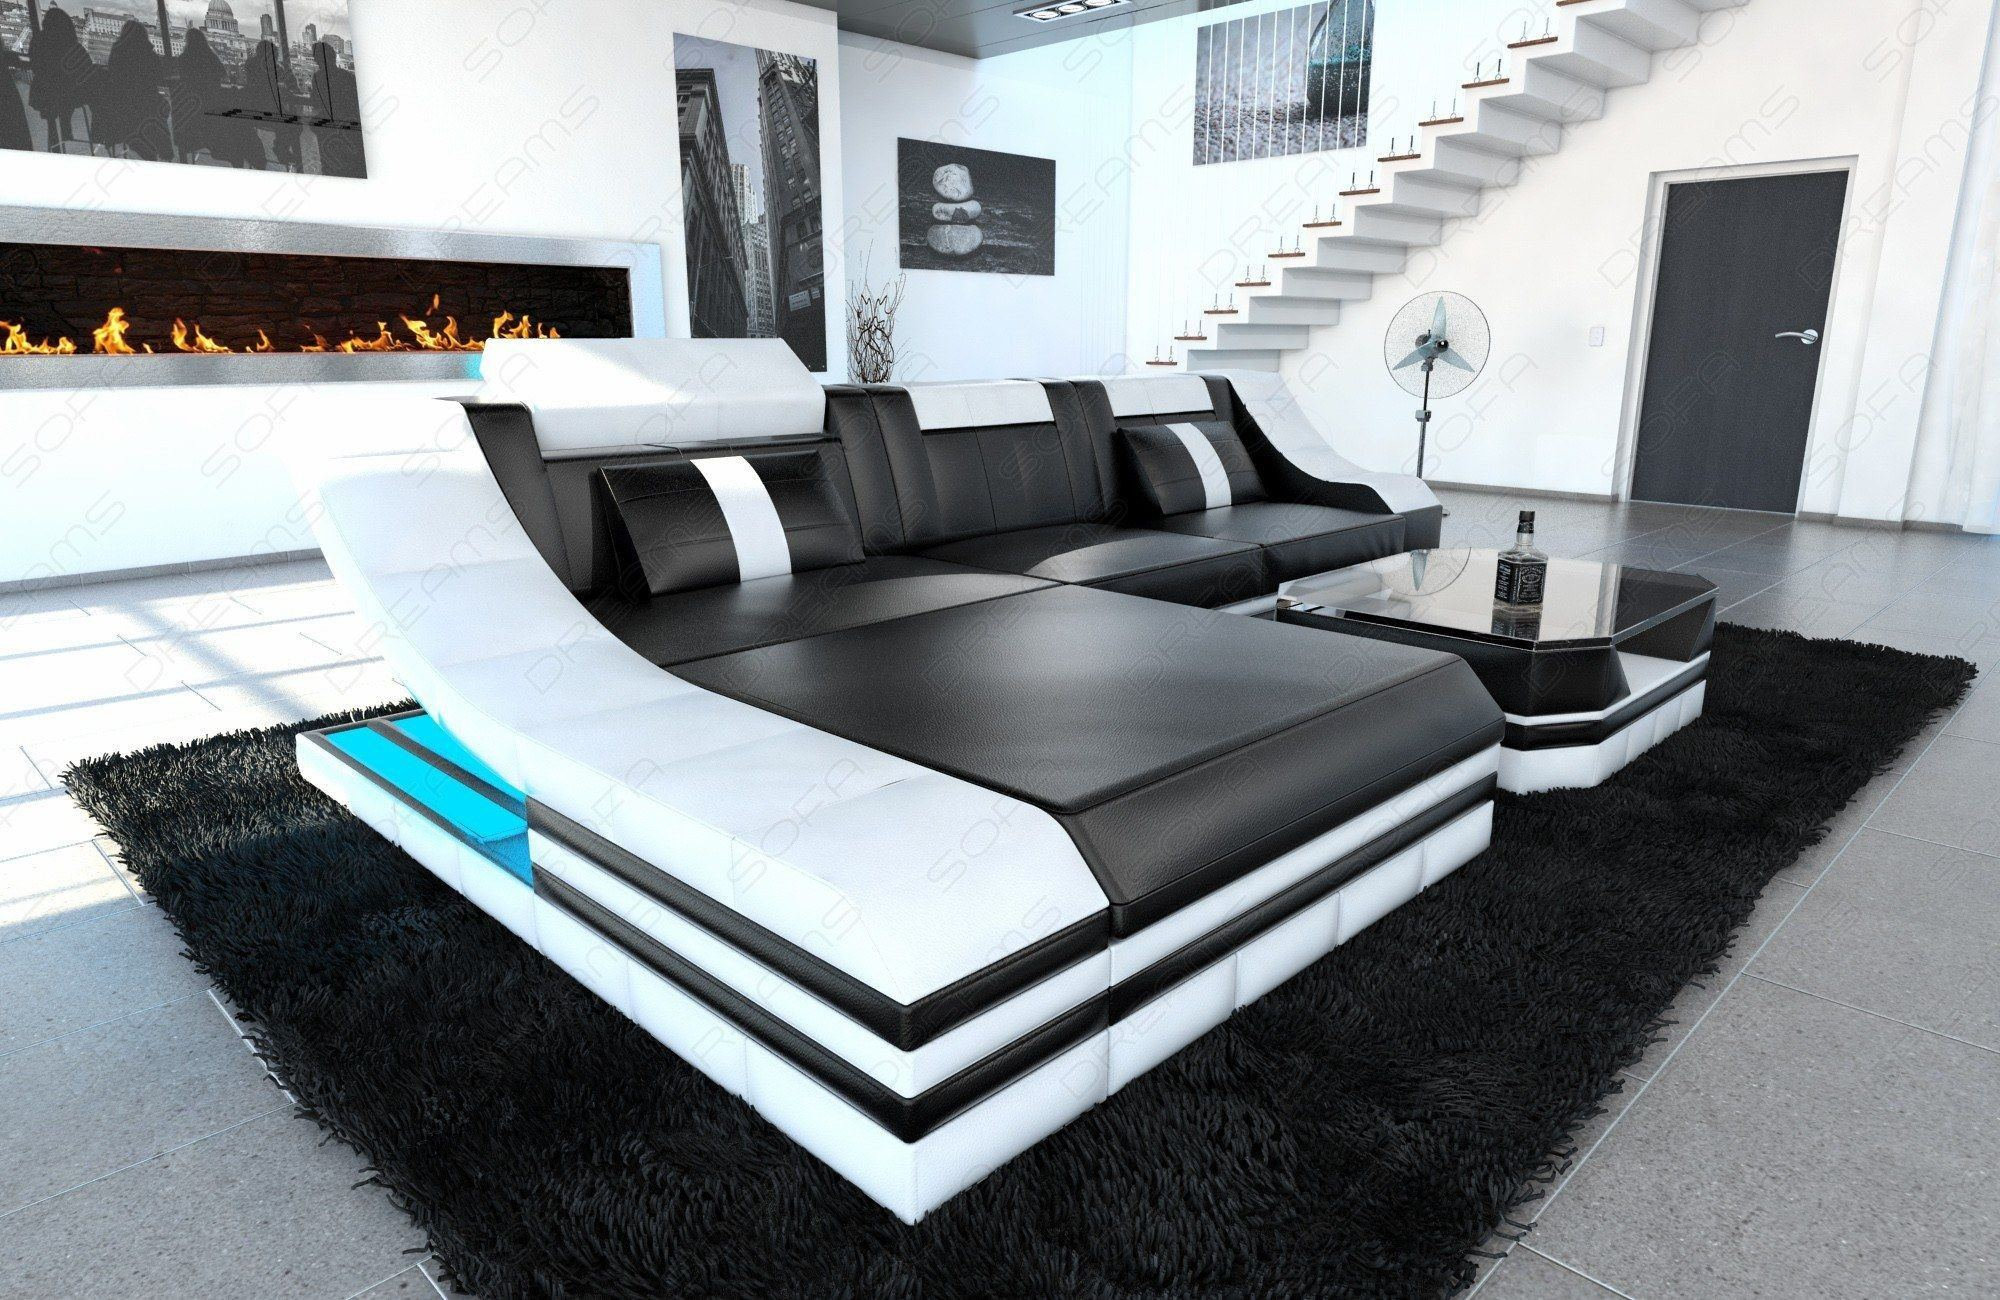 ledersofa turino in der l form und den farben schwarz weiss. Black Bedroom Furniture Sets. Home Design Ideas